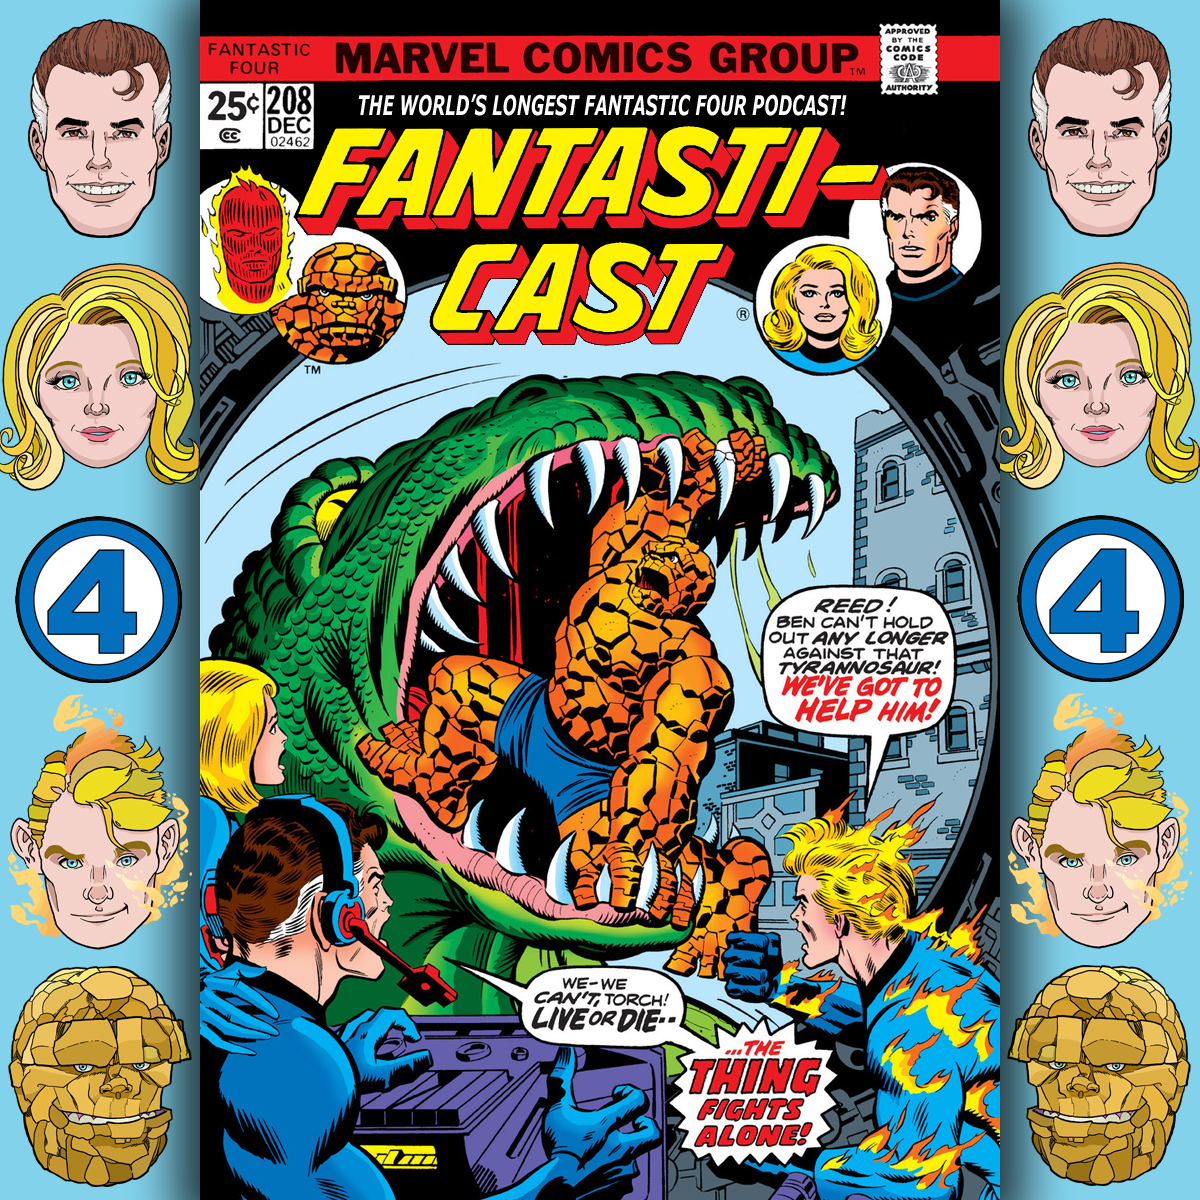 Episode 208: Fantastic Four #161 - All The World Wars At Once